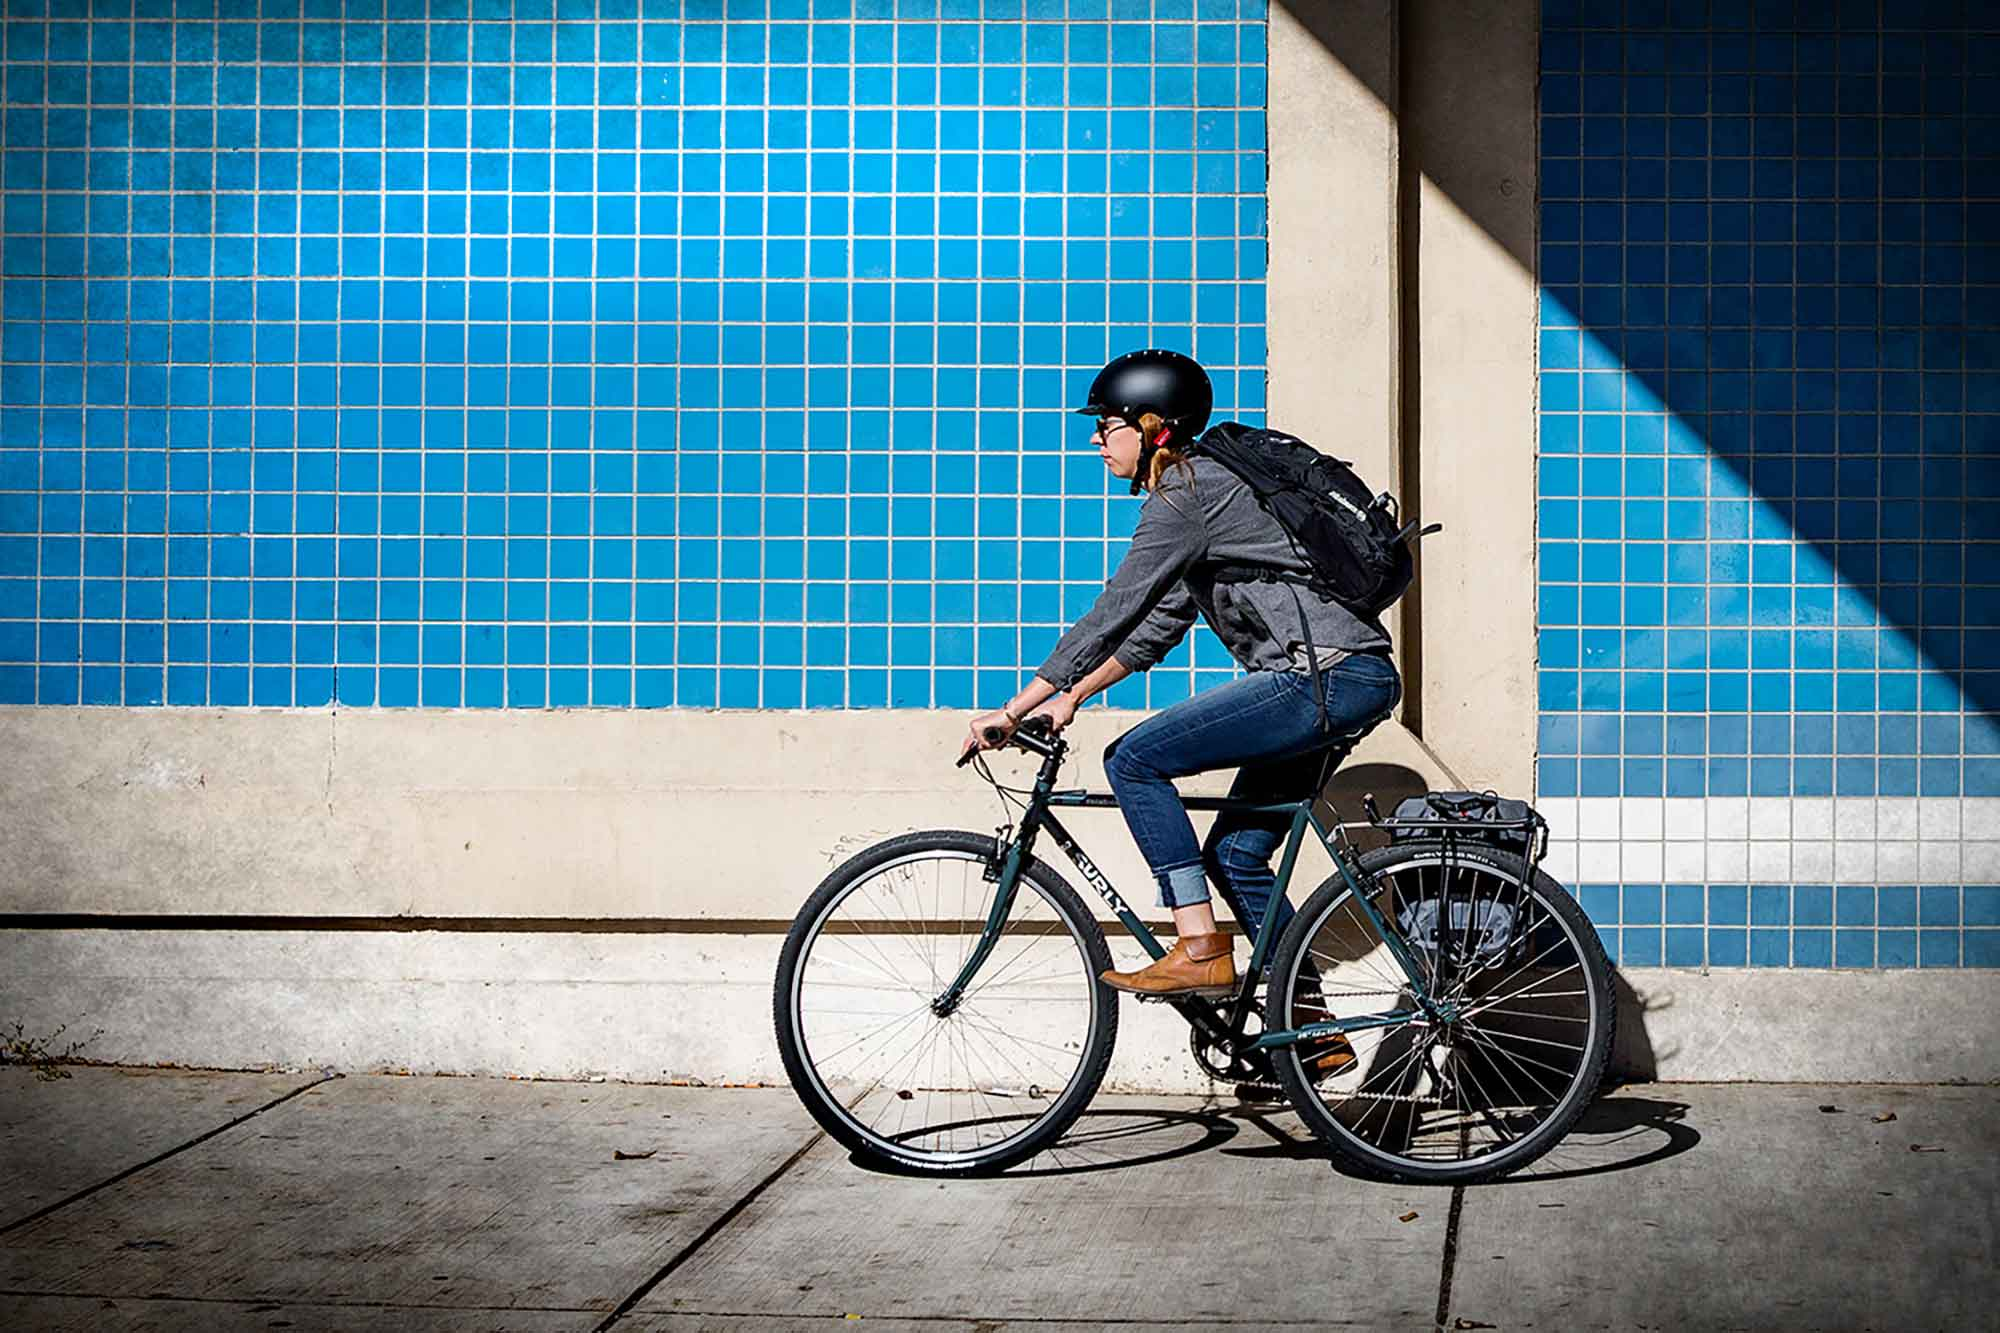 Cyclist rides a Surly bike on a sidewalk alongside a building with blue tiles on it